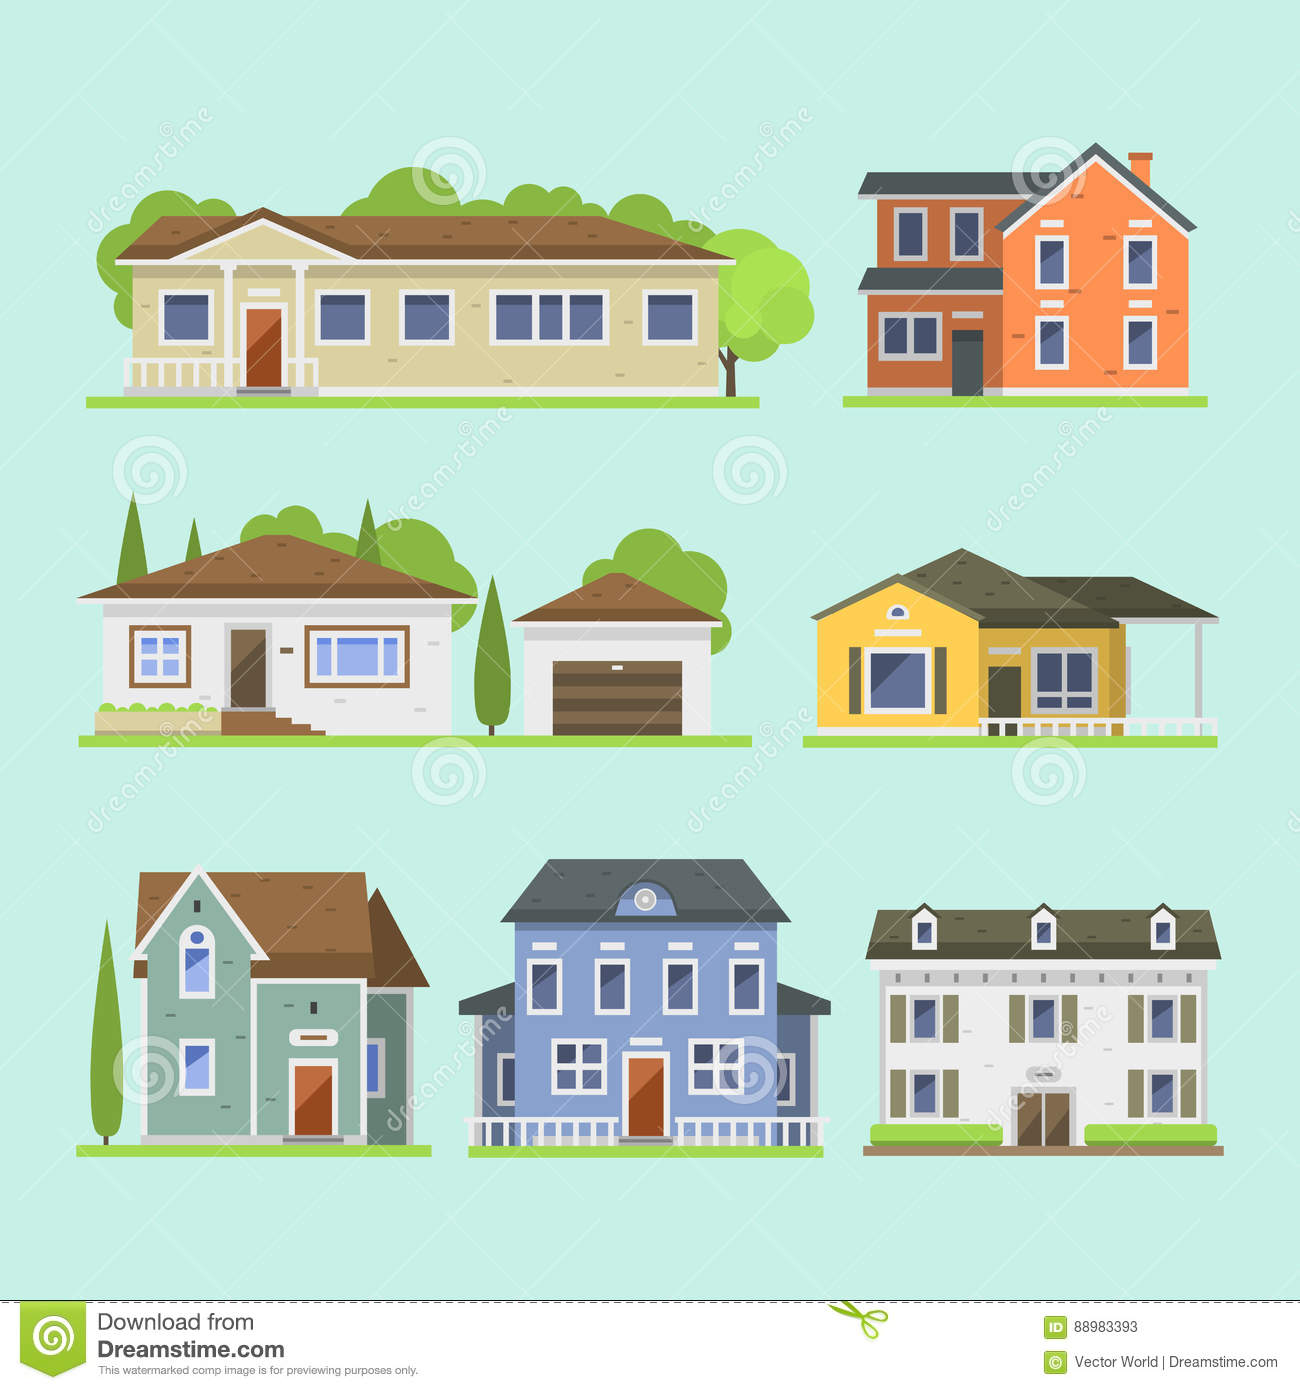 Village Graphic Design In Contemporary Style Stock Vector - Image ...